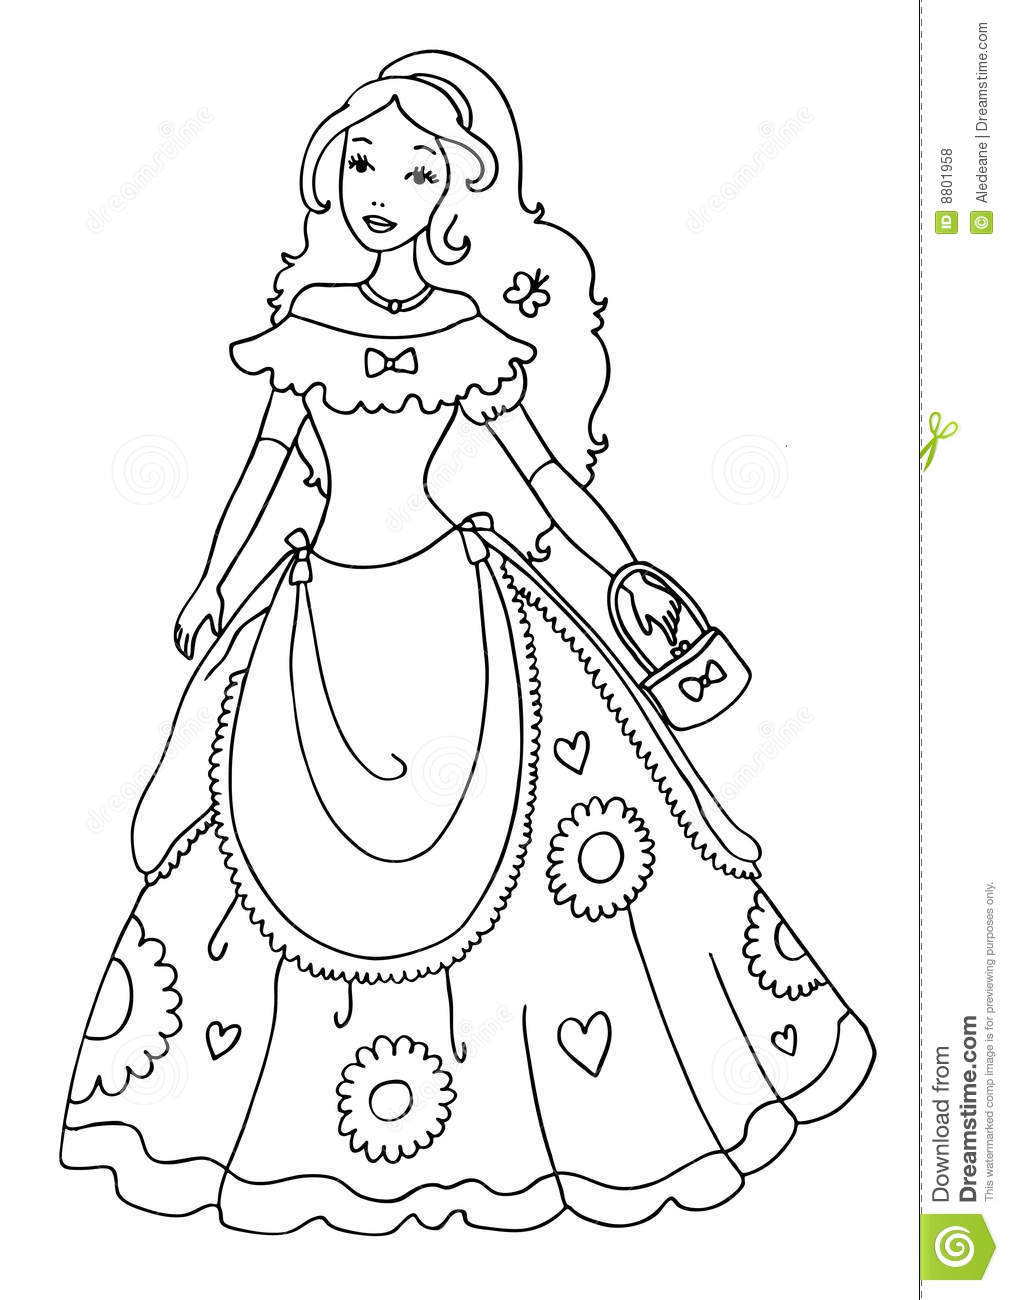 Princess coloring in page - Princess Coloring Page